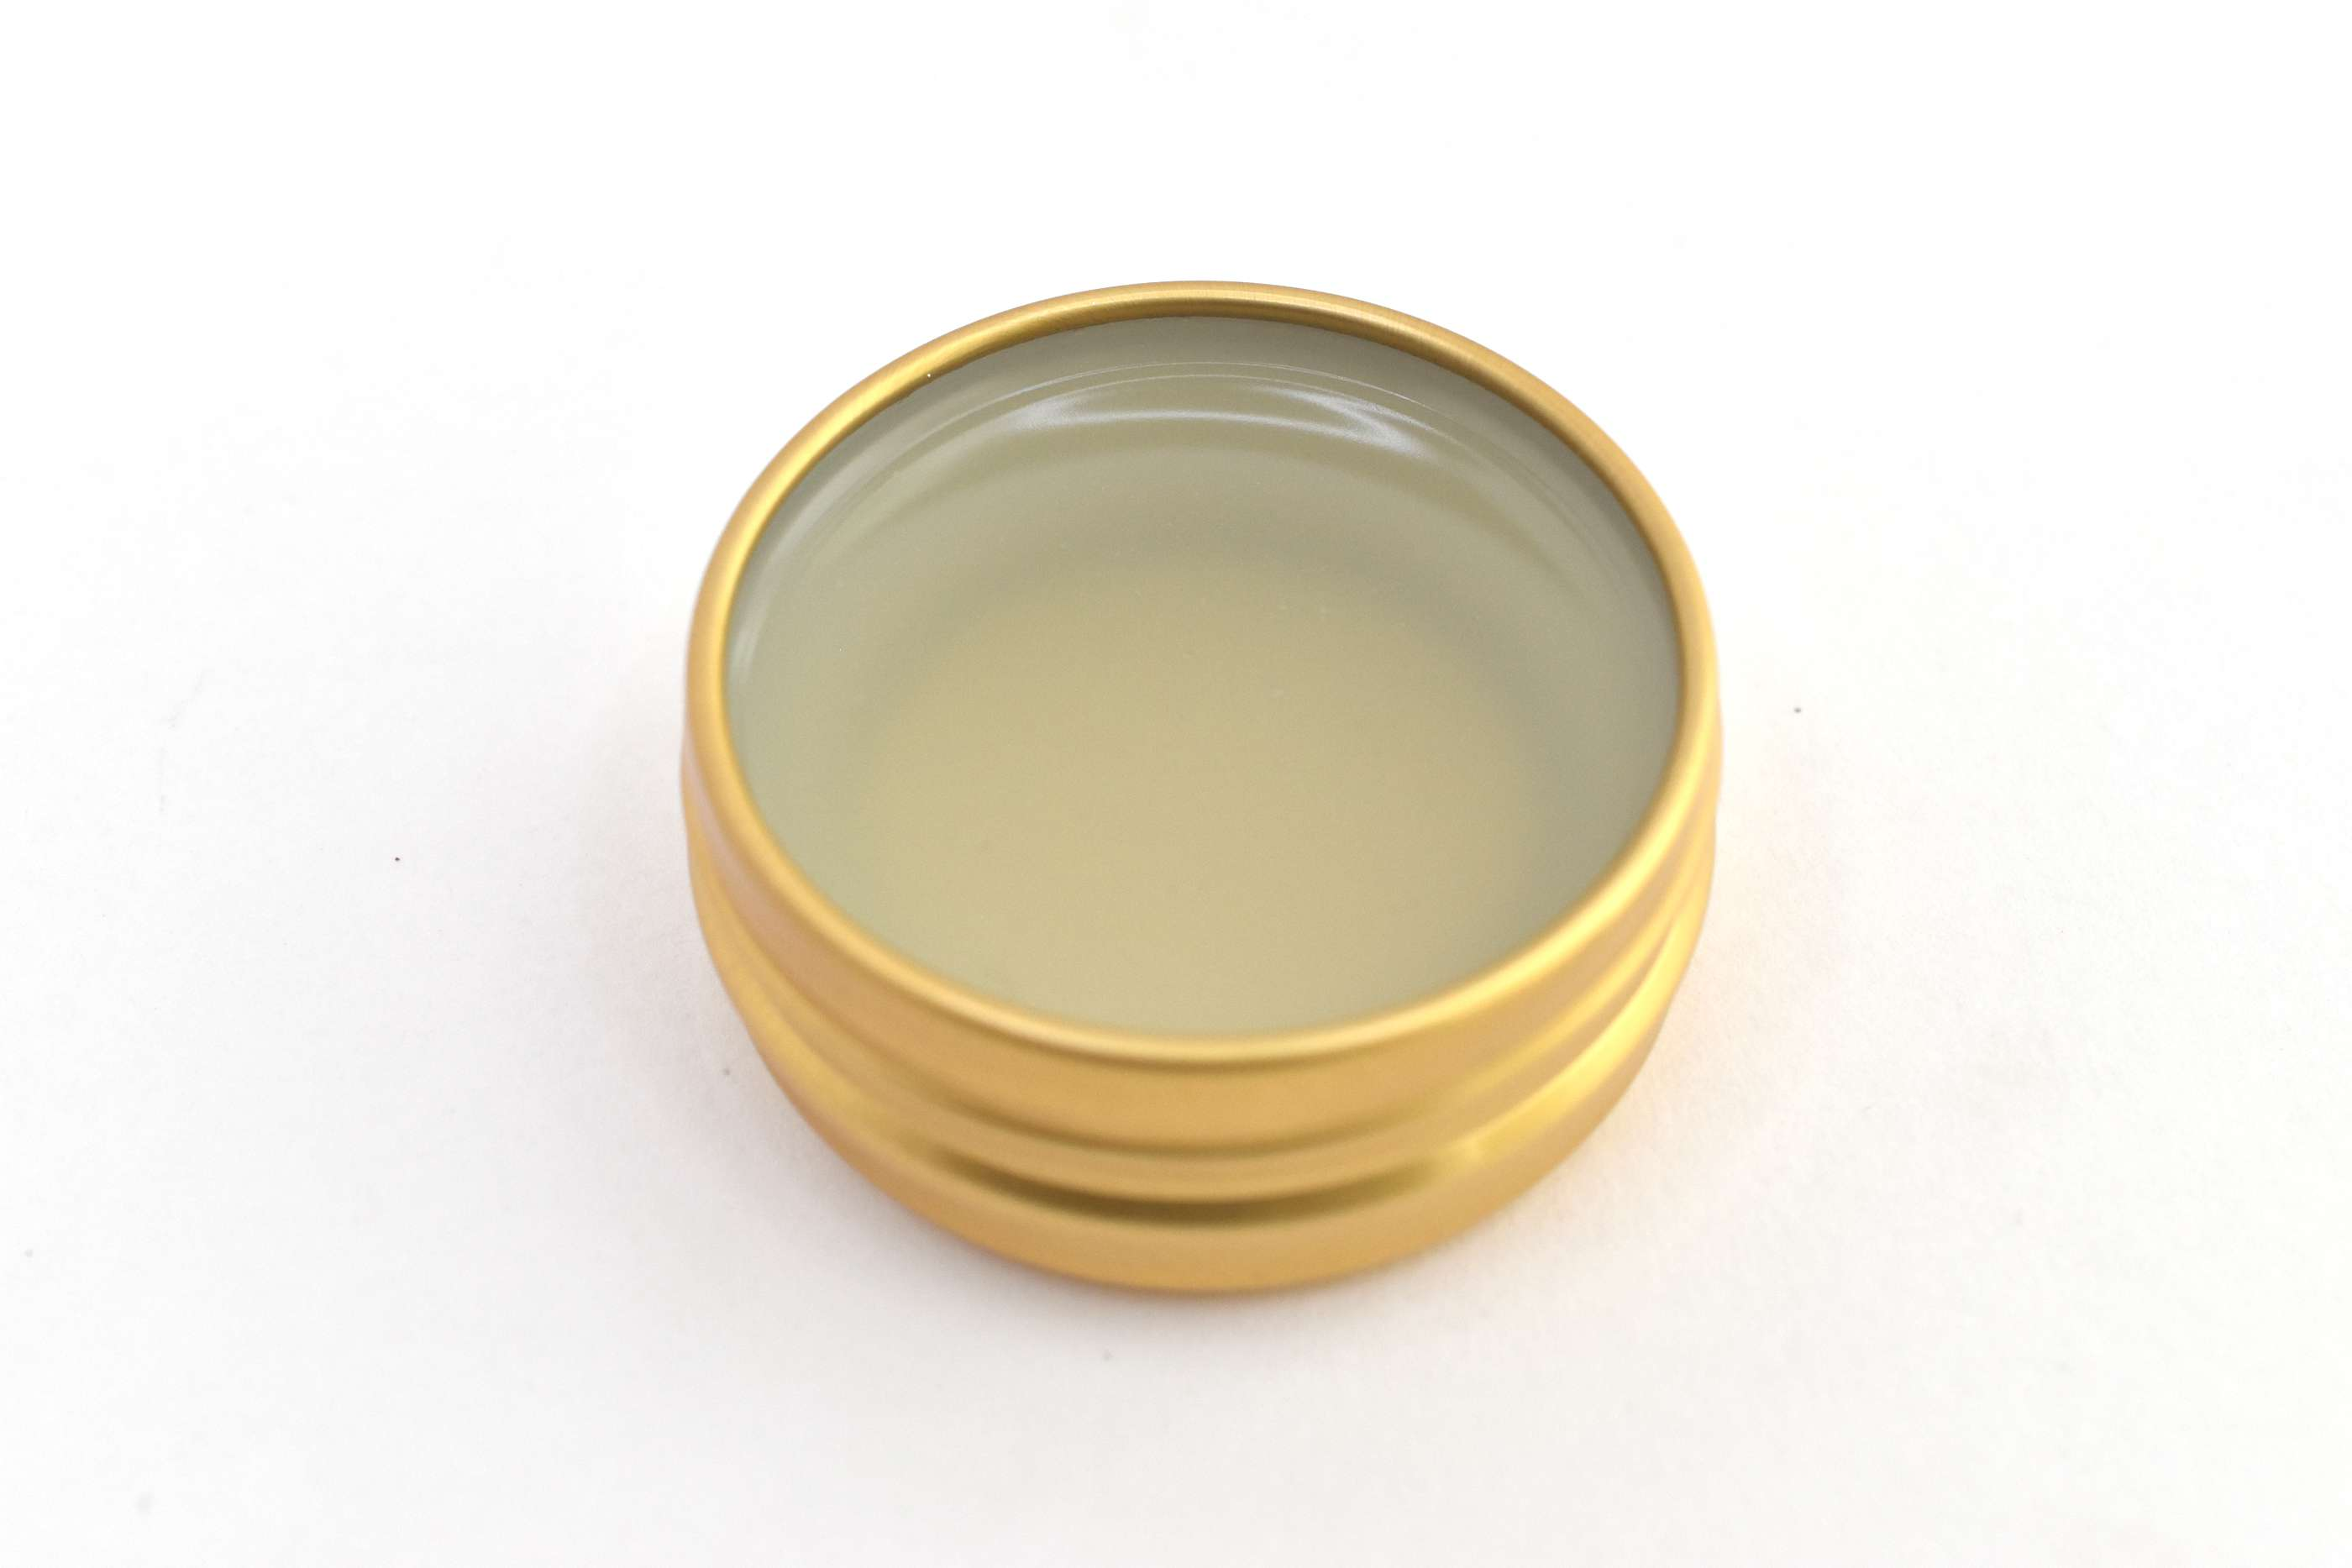 Honey Citrus Lip Balm Cooling in a Container